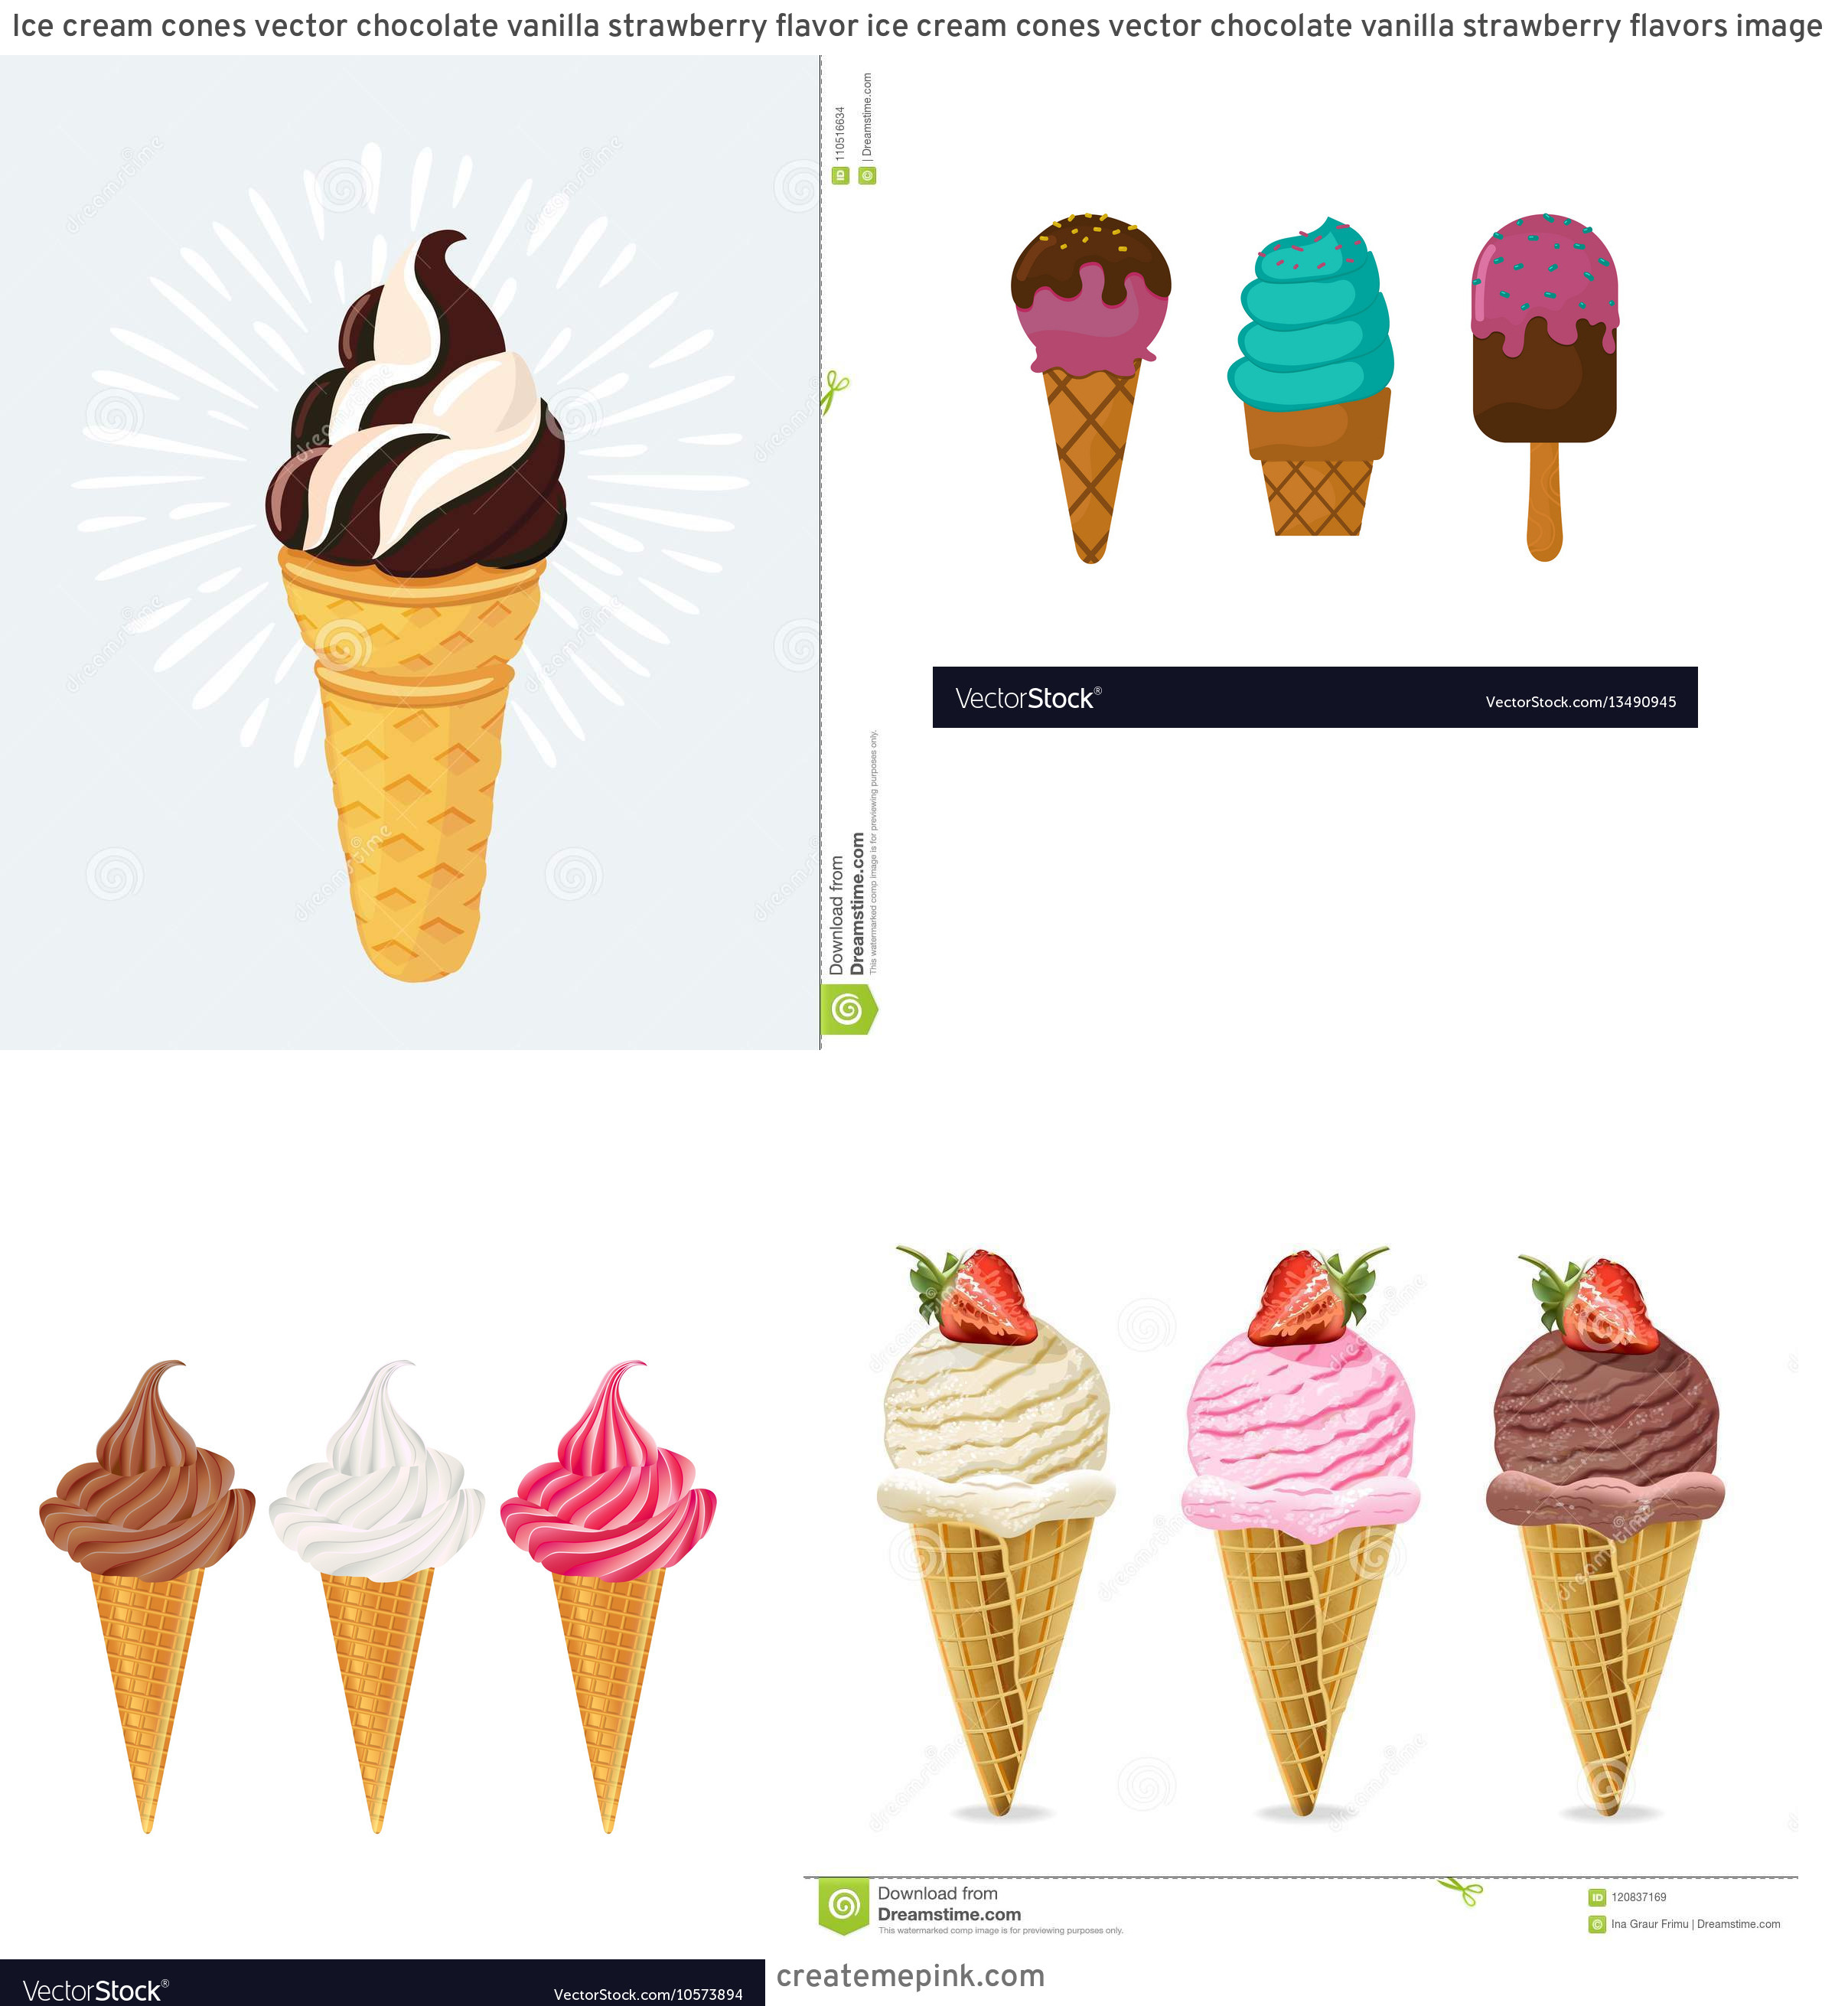 Vector Chocolate Vanilla: Ice Cream Cones Vector Chocolate Vanilla Strawberry Flavor Ice Cream Cones Vector Chocolate Vanilla Strawberry Flavors Image